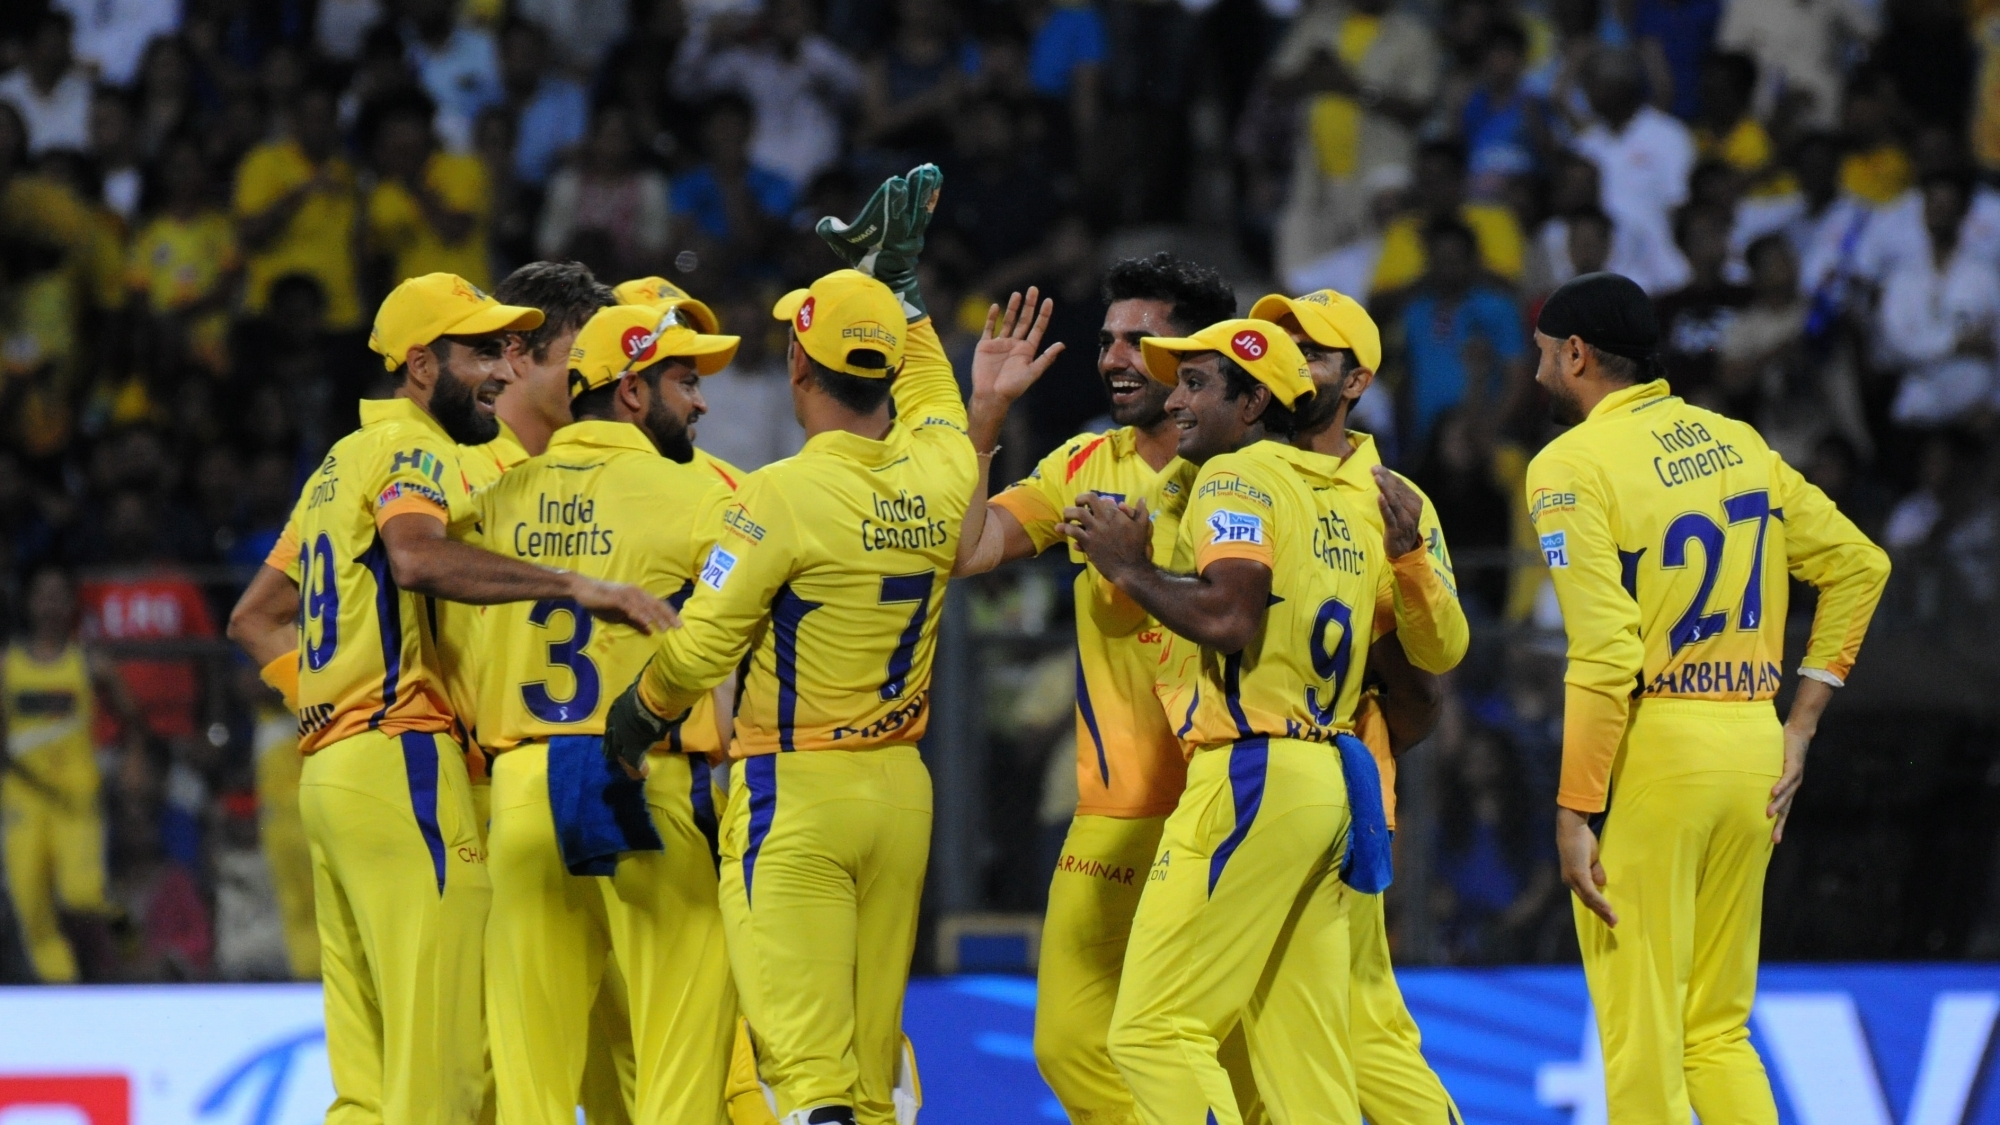 IPL 2018: Qualifier 1, SRH vs CSK: Twitter reacts as Chennai bowlers restrict SRH to 139 for 7